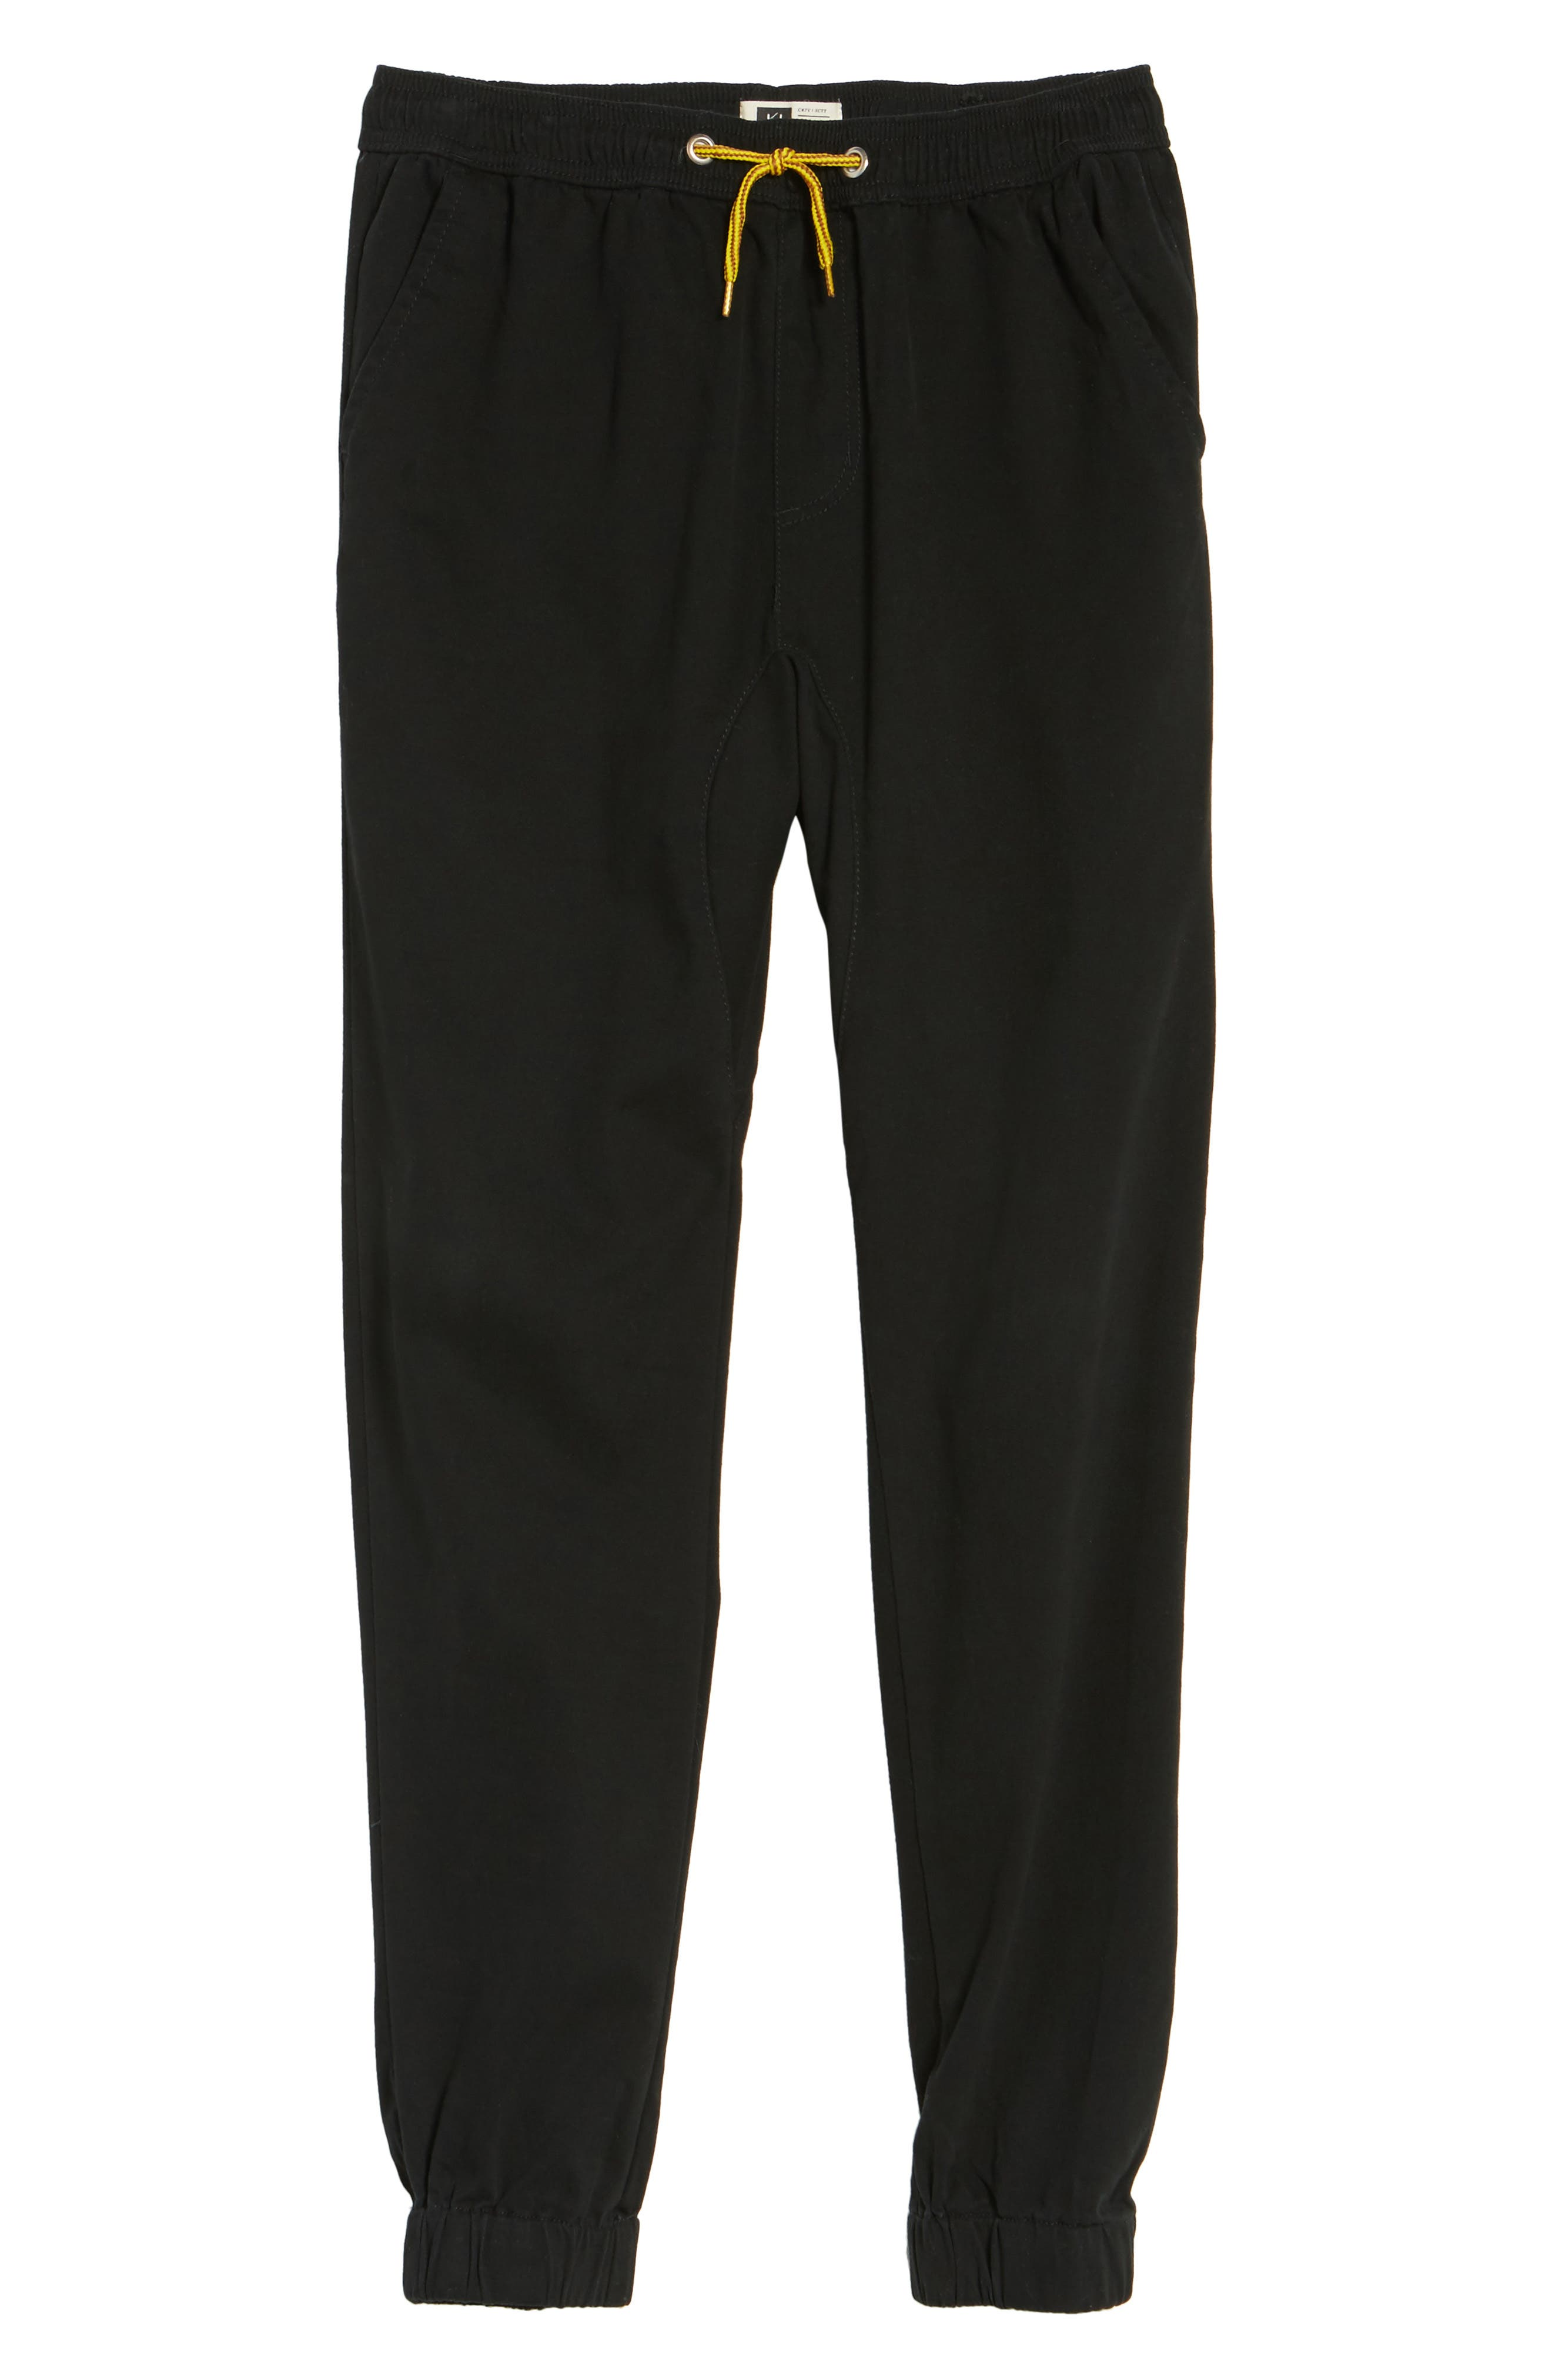 Weekend Jogger Pants,                             Alternate thumbnail 41, color,